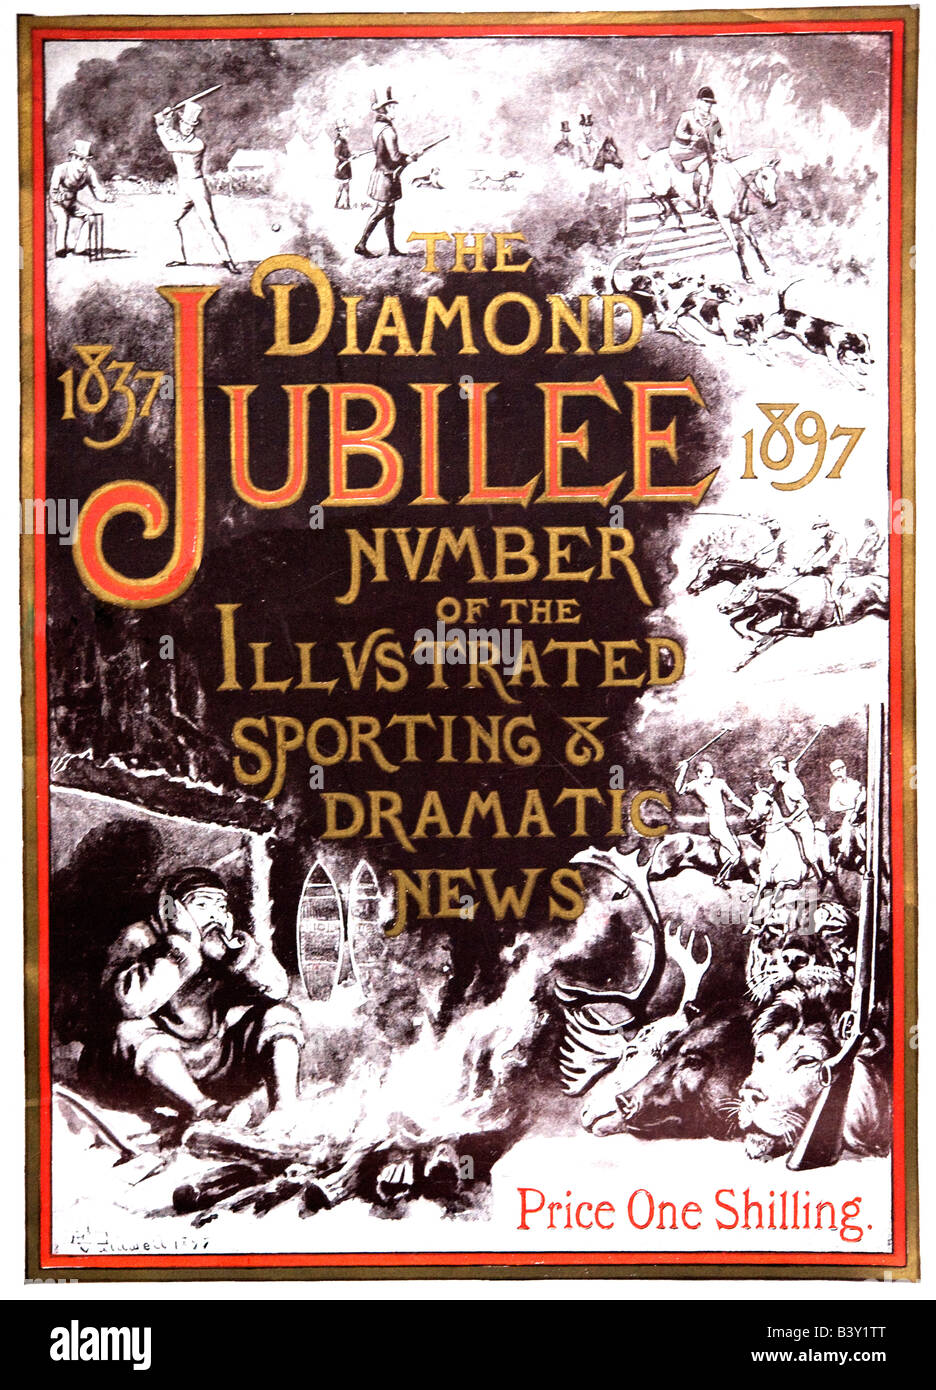 The Illustrated Sporting & Dramatic News Magazine Diamond Jubilee Edition 1897 FOR EDITORIAL USE ONLY - Stock Image